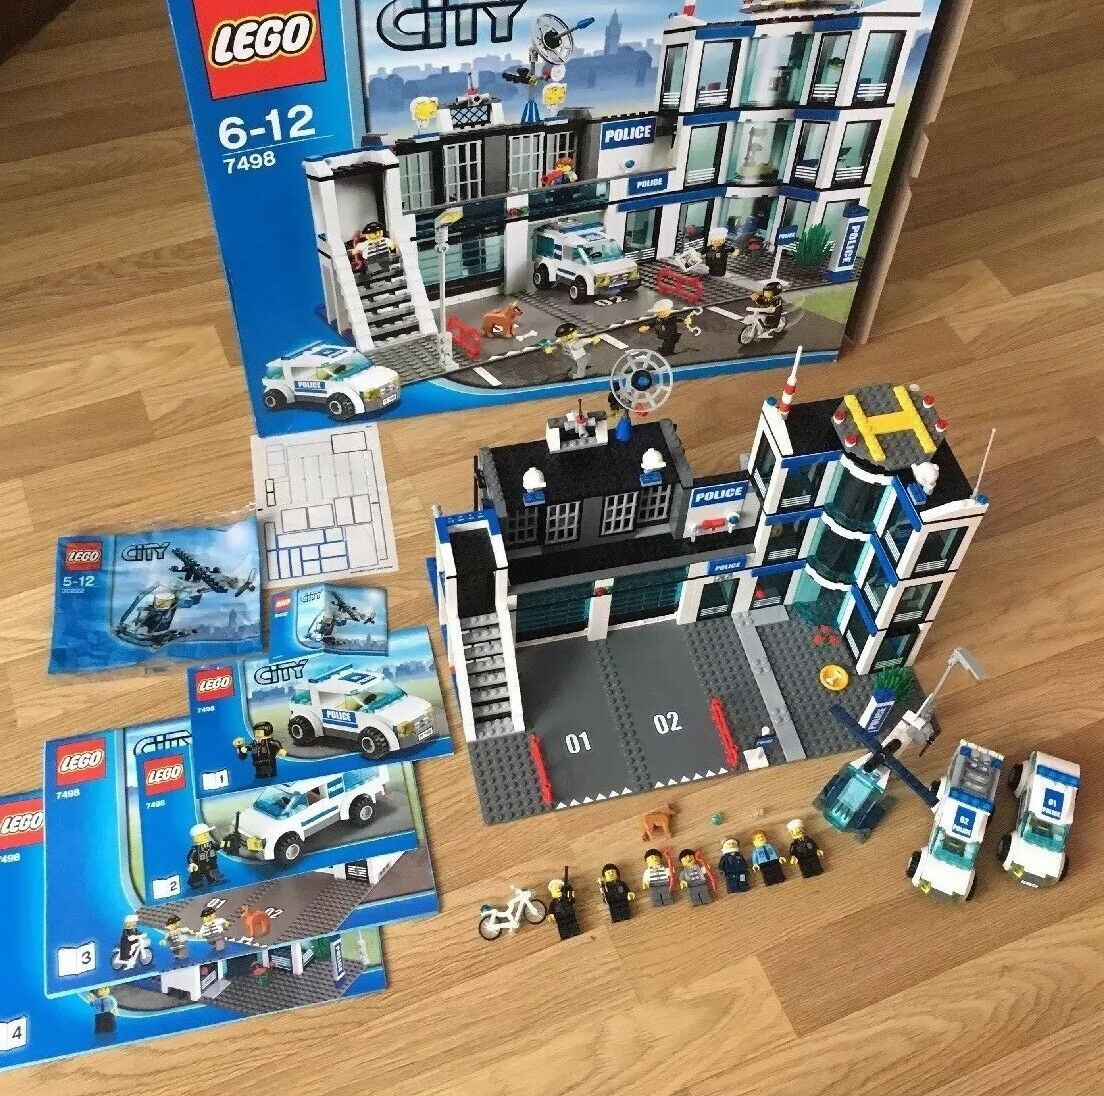 LEGO City 7498 Police Station - With Box Instructions Inc Helicopter Discontinue